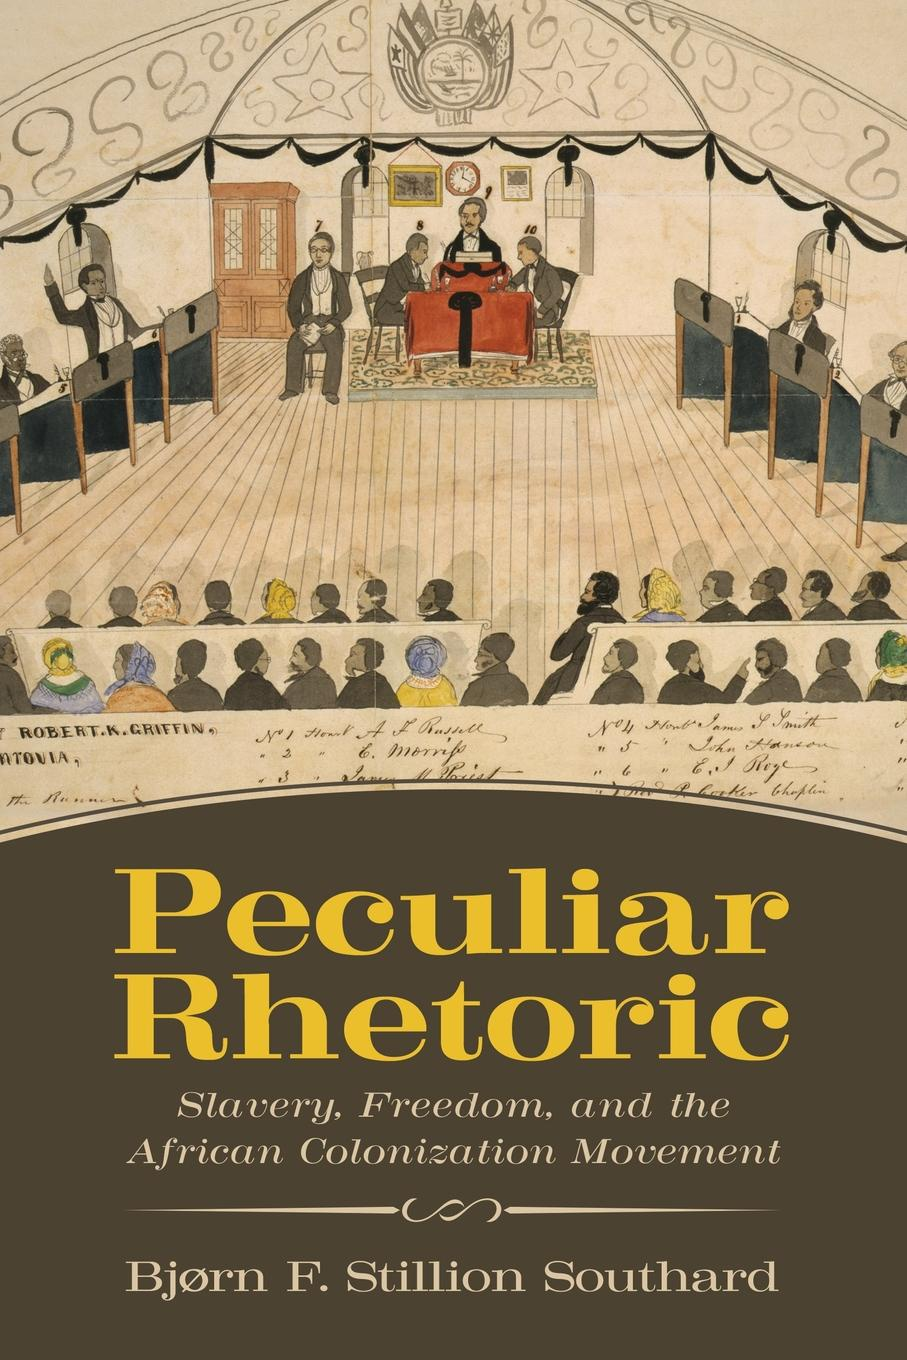 Bjorn F Stillion Southard Peculiar Rhetoric. Slavery, Freedom, and the African Colonization Movement the biography of mahommah gardo baquaqua his passage from slavery to freedom in africa and america